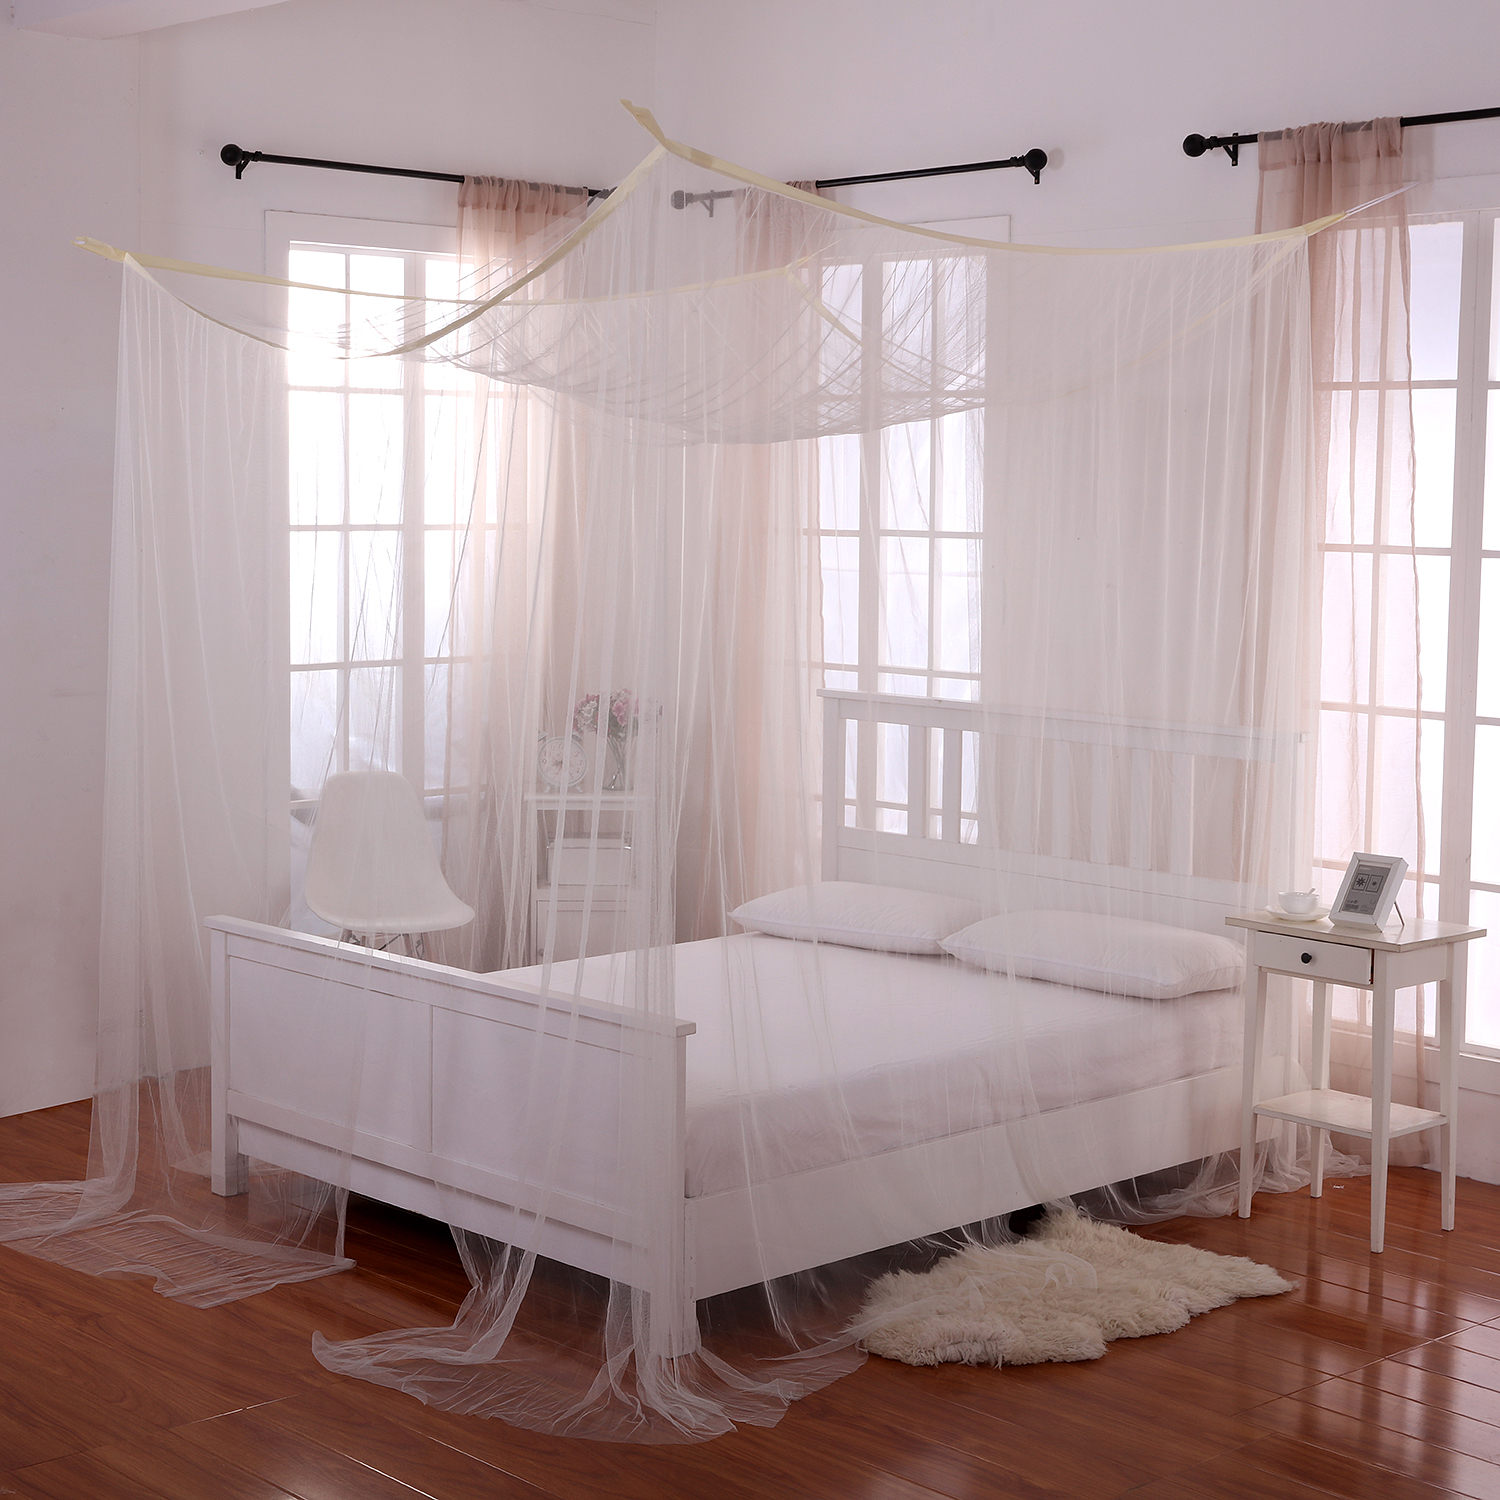 Casablanca Palace 4 Post Bed Sheer Panel Canopy